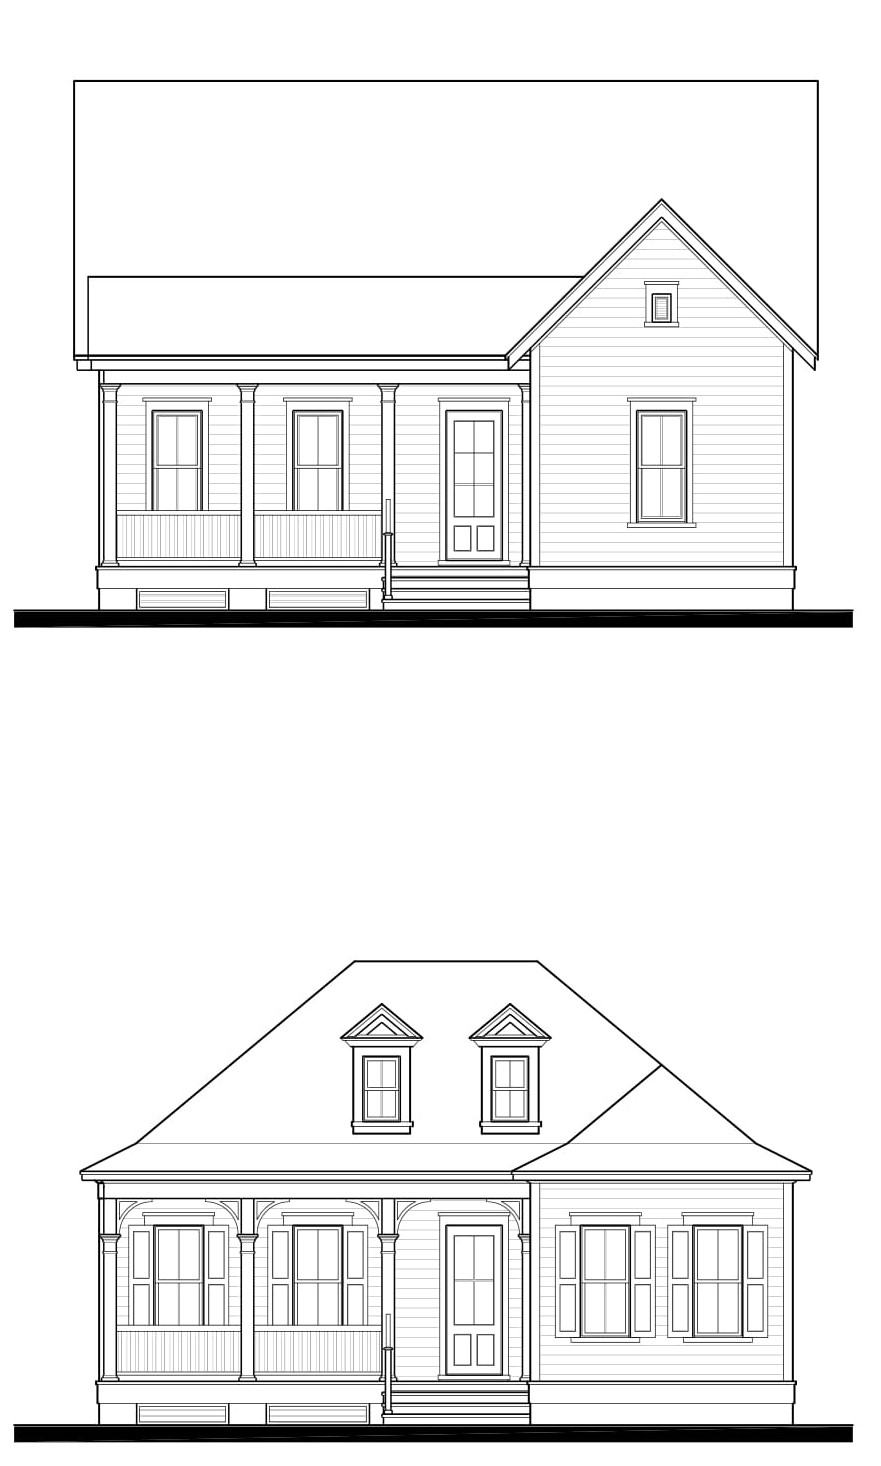 Alternate Elevations 2